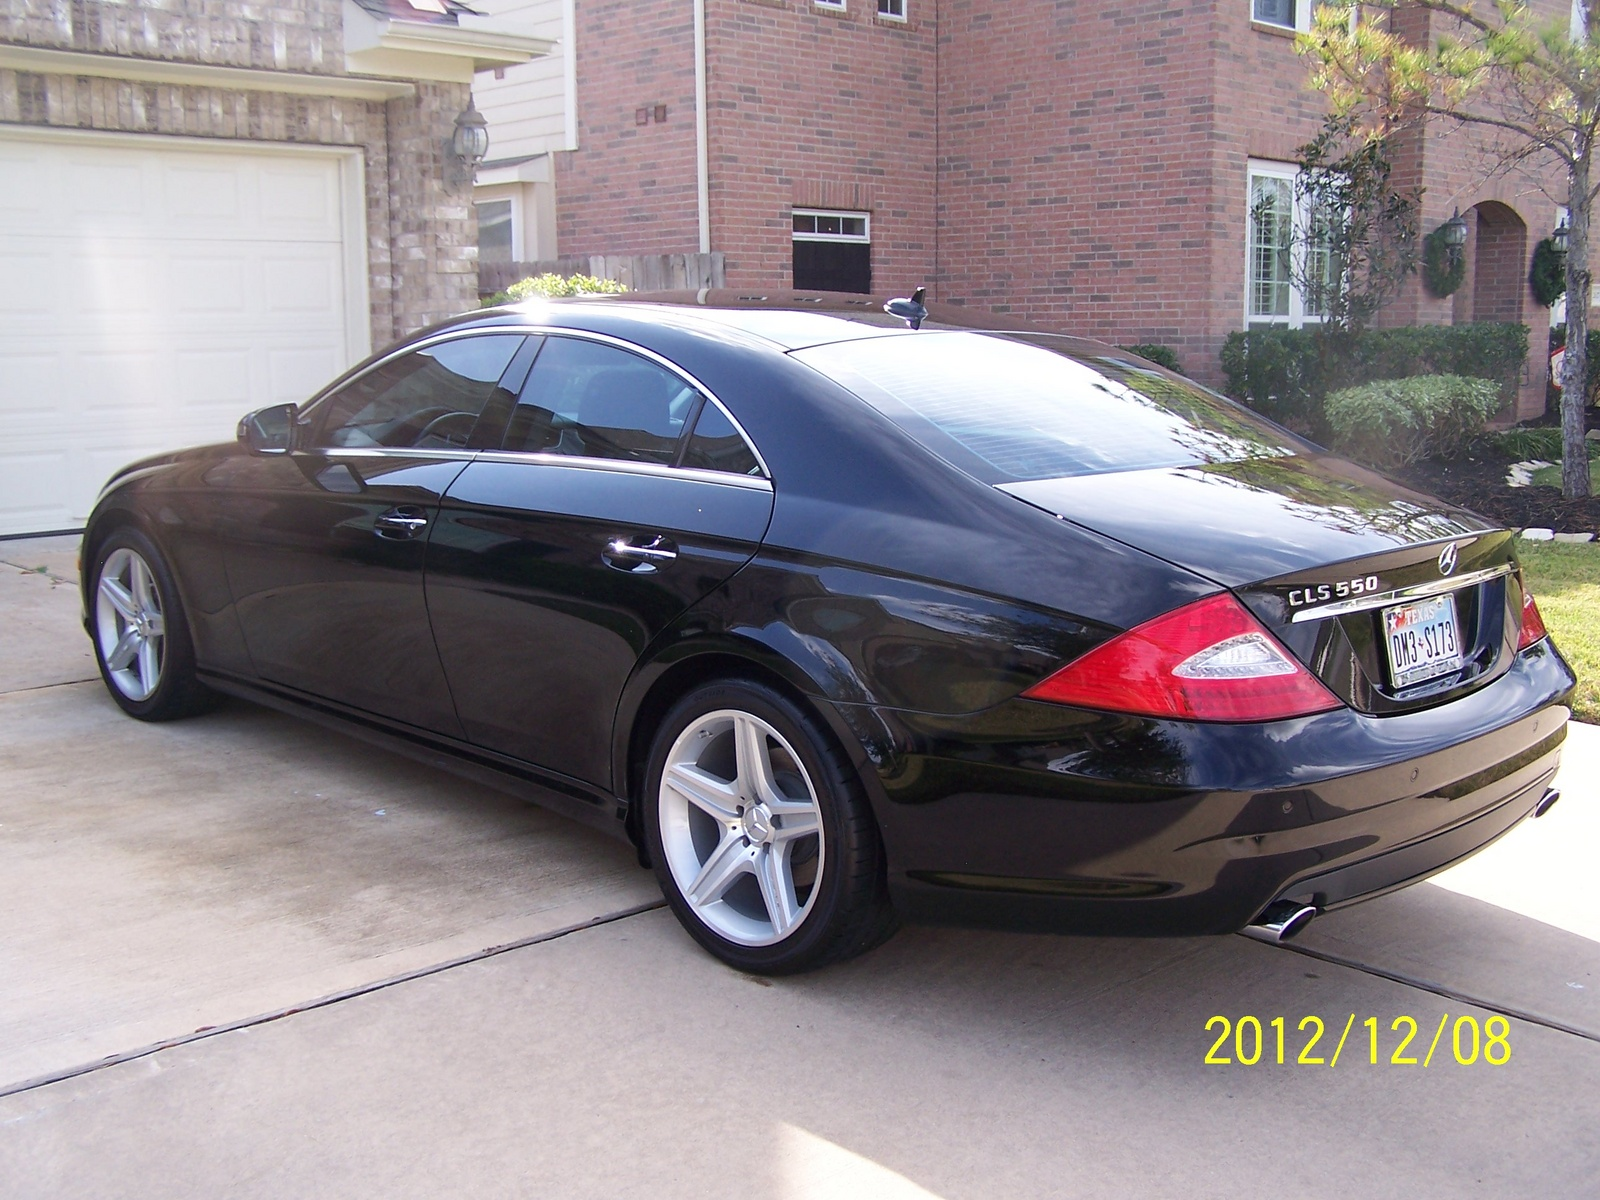 2009 mercedes benz cls class pictures cargurus for 2009 mercedes benz cls 550 amg